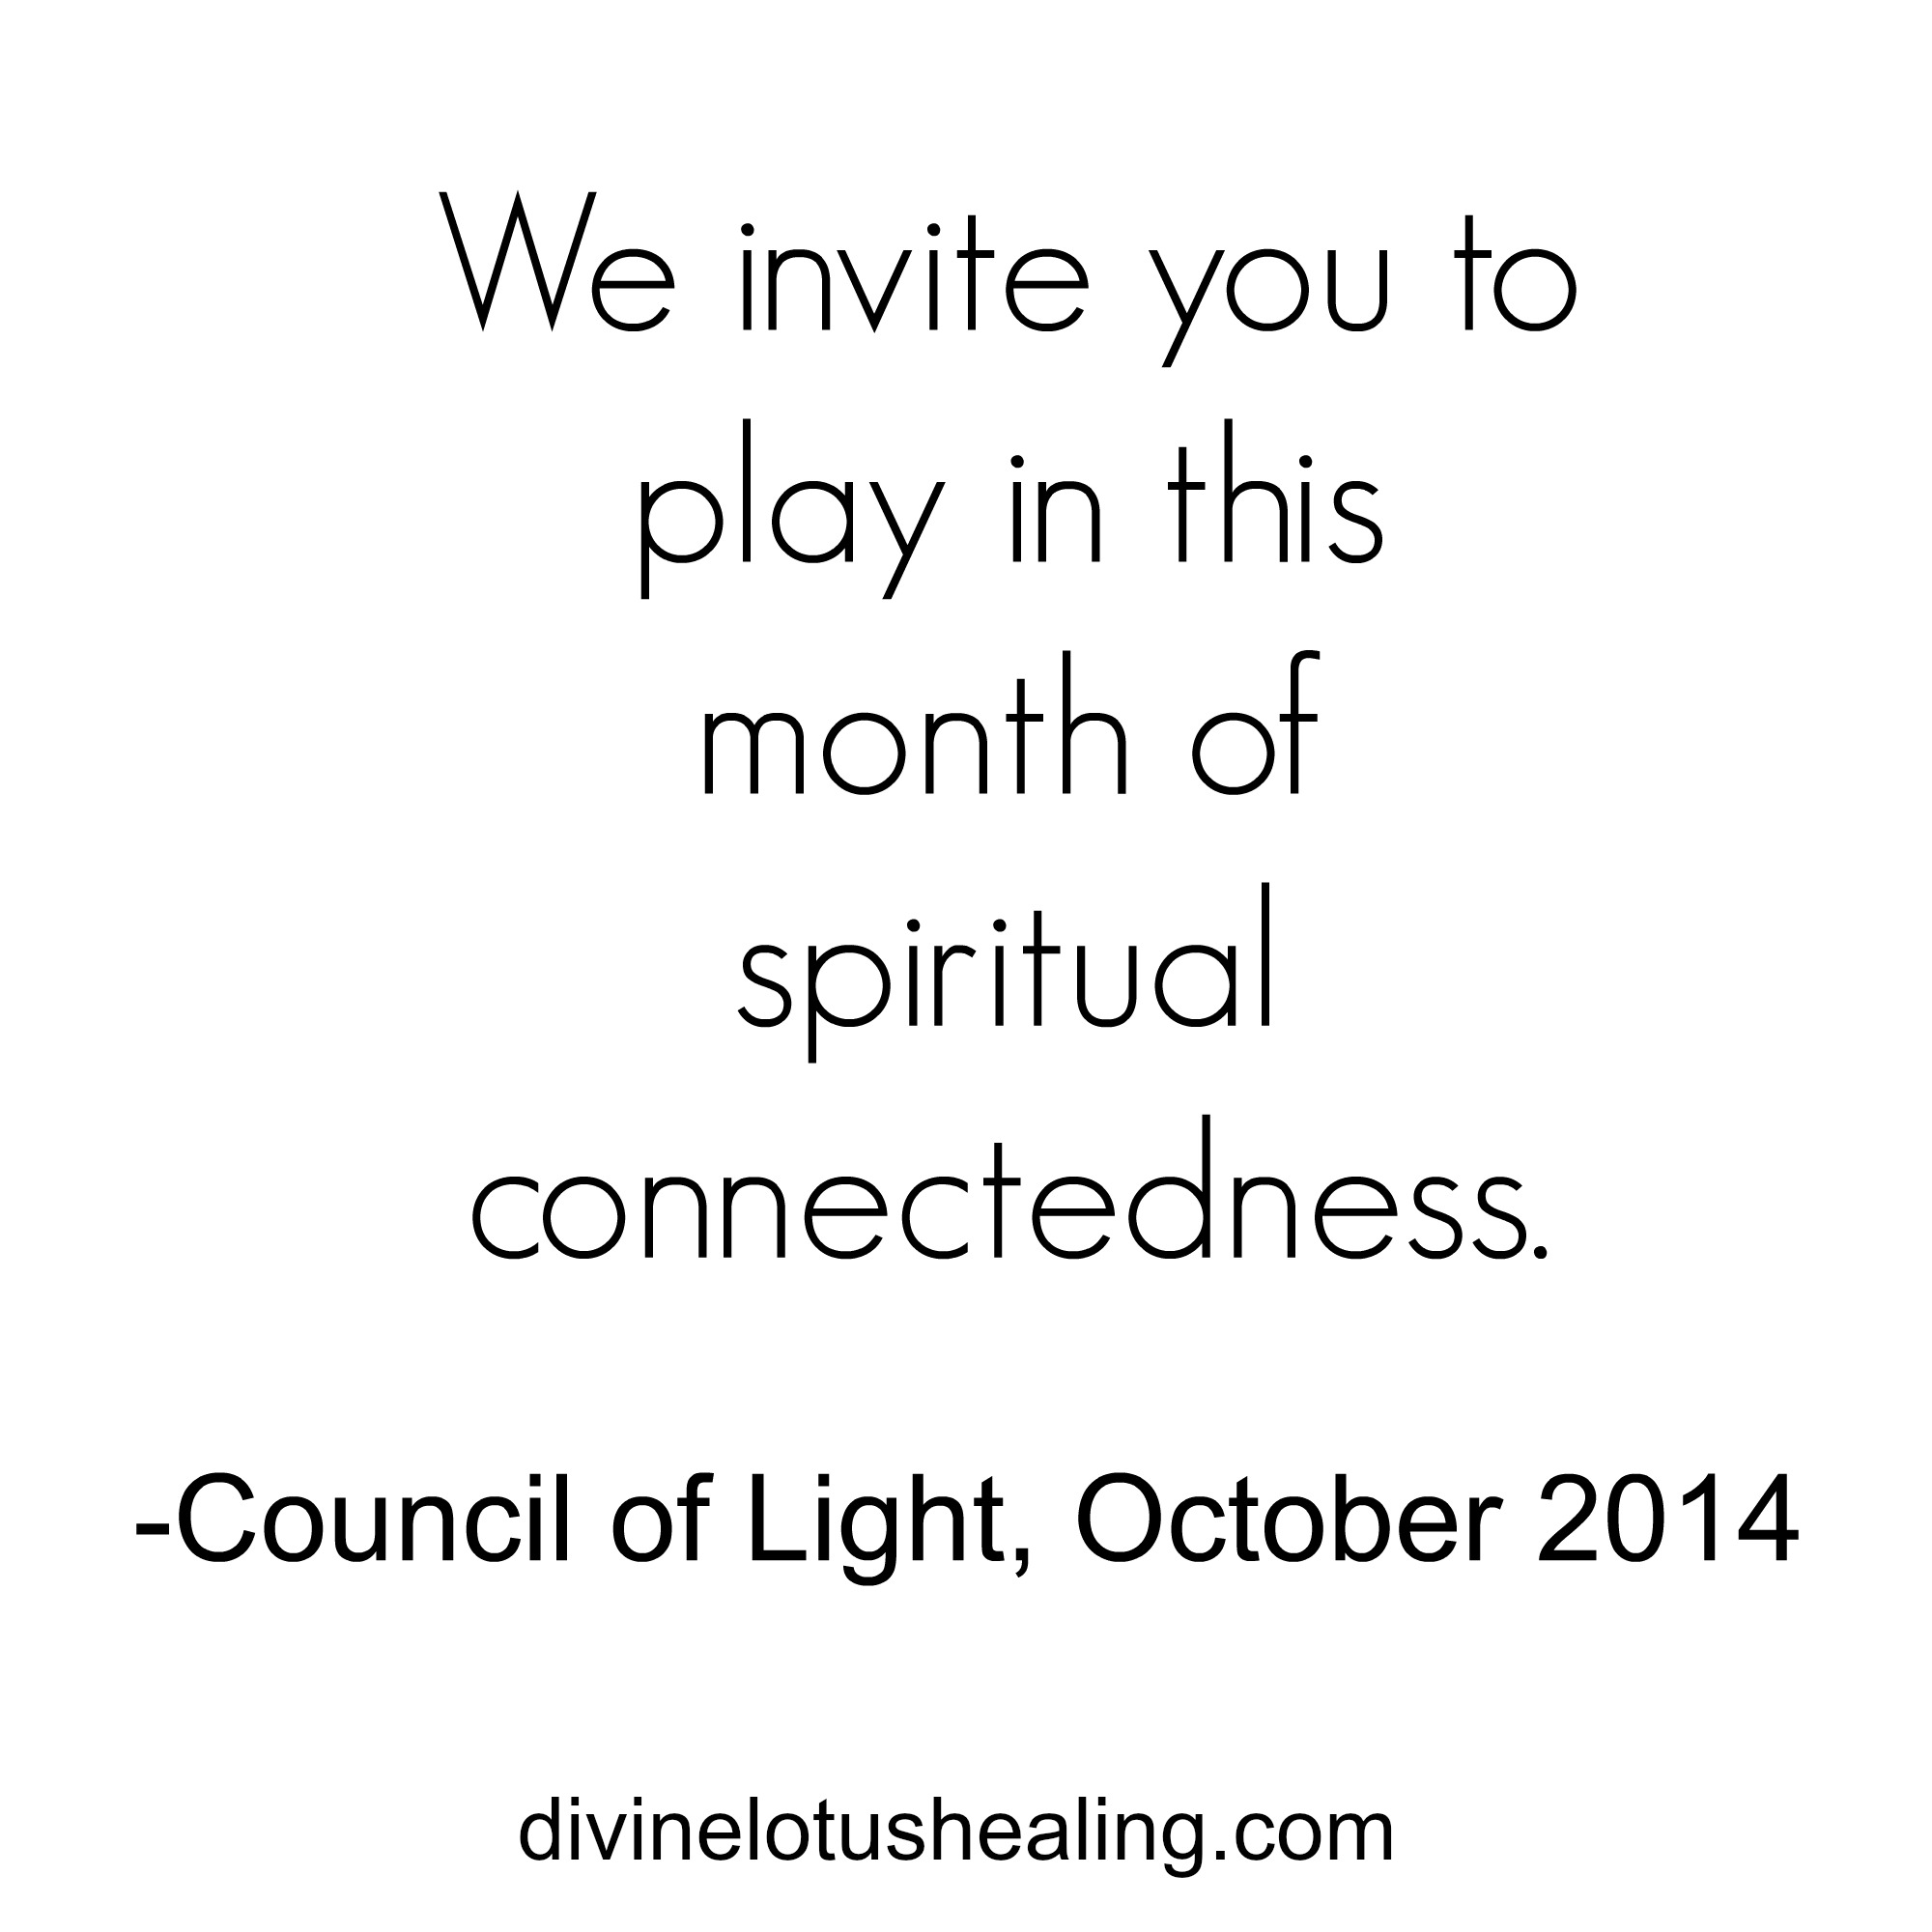 Council of Light October 2014 Channeled Message